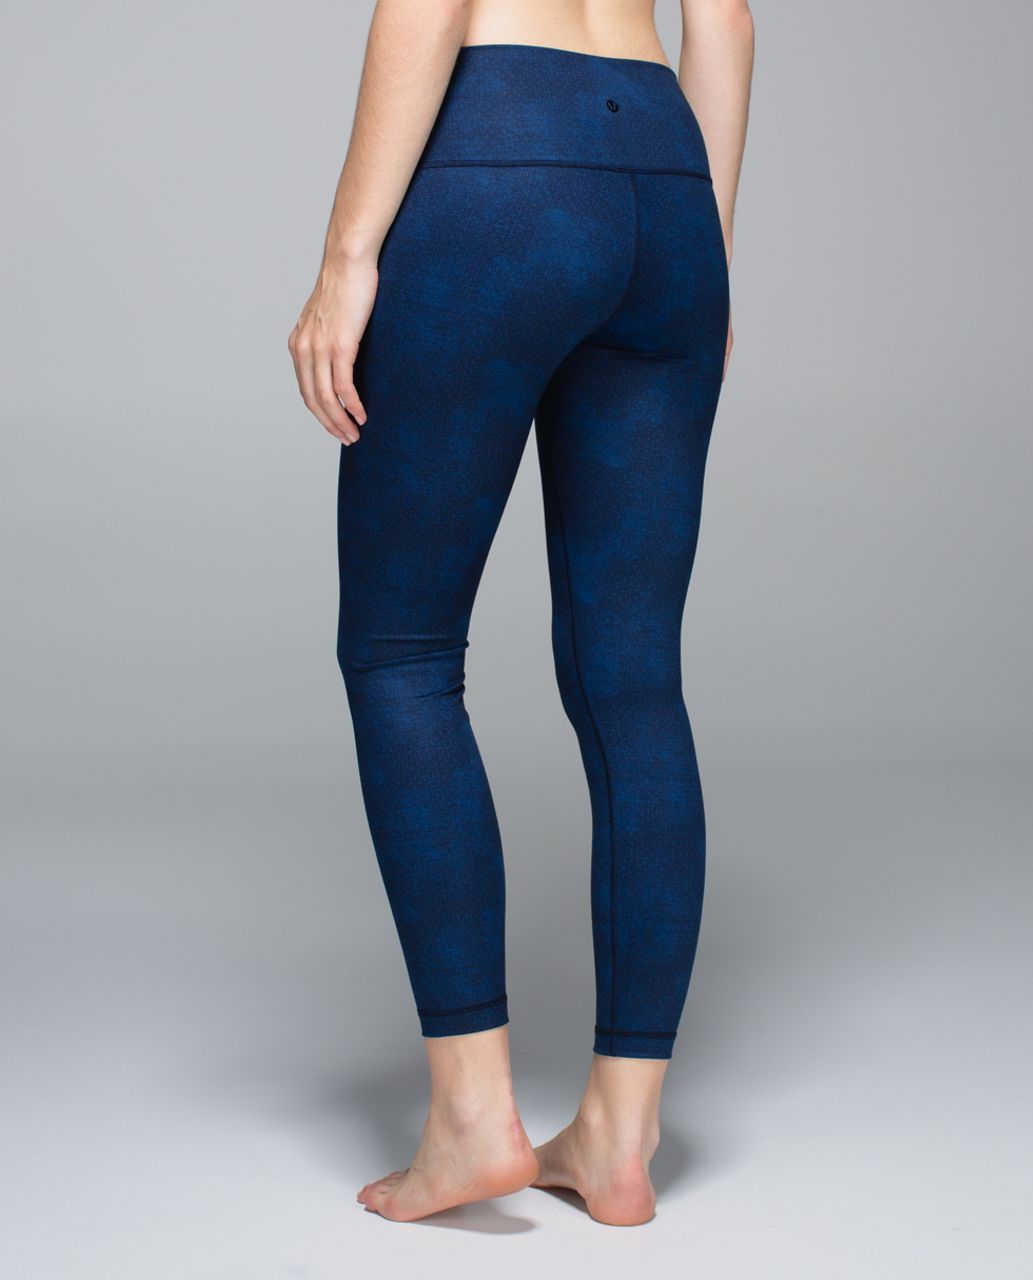 Lululemon High Times Pant - Sashiko Cross Inkwell Rugged Blue